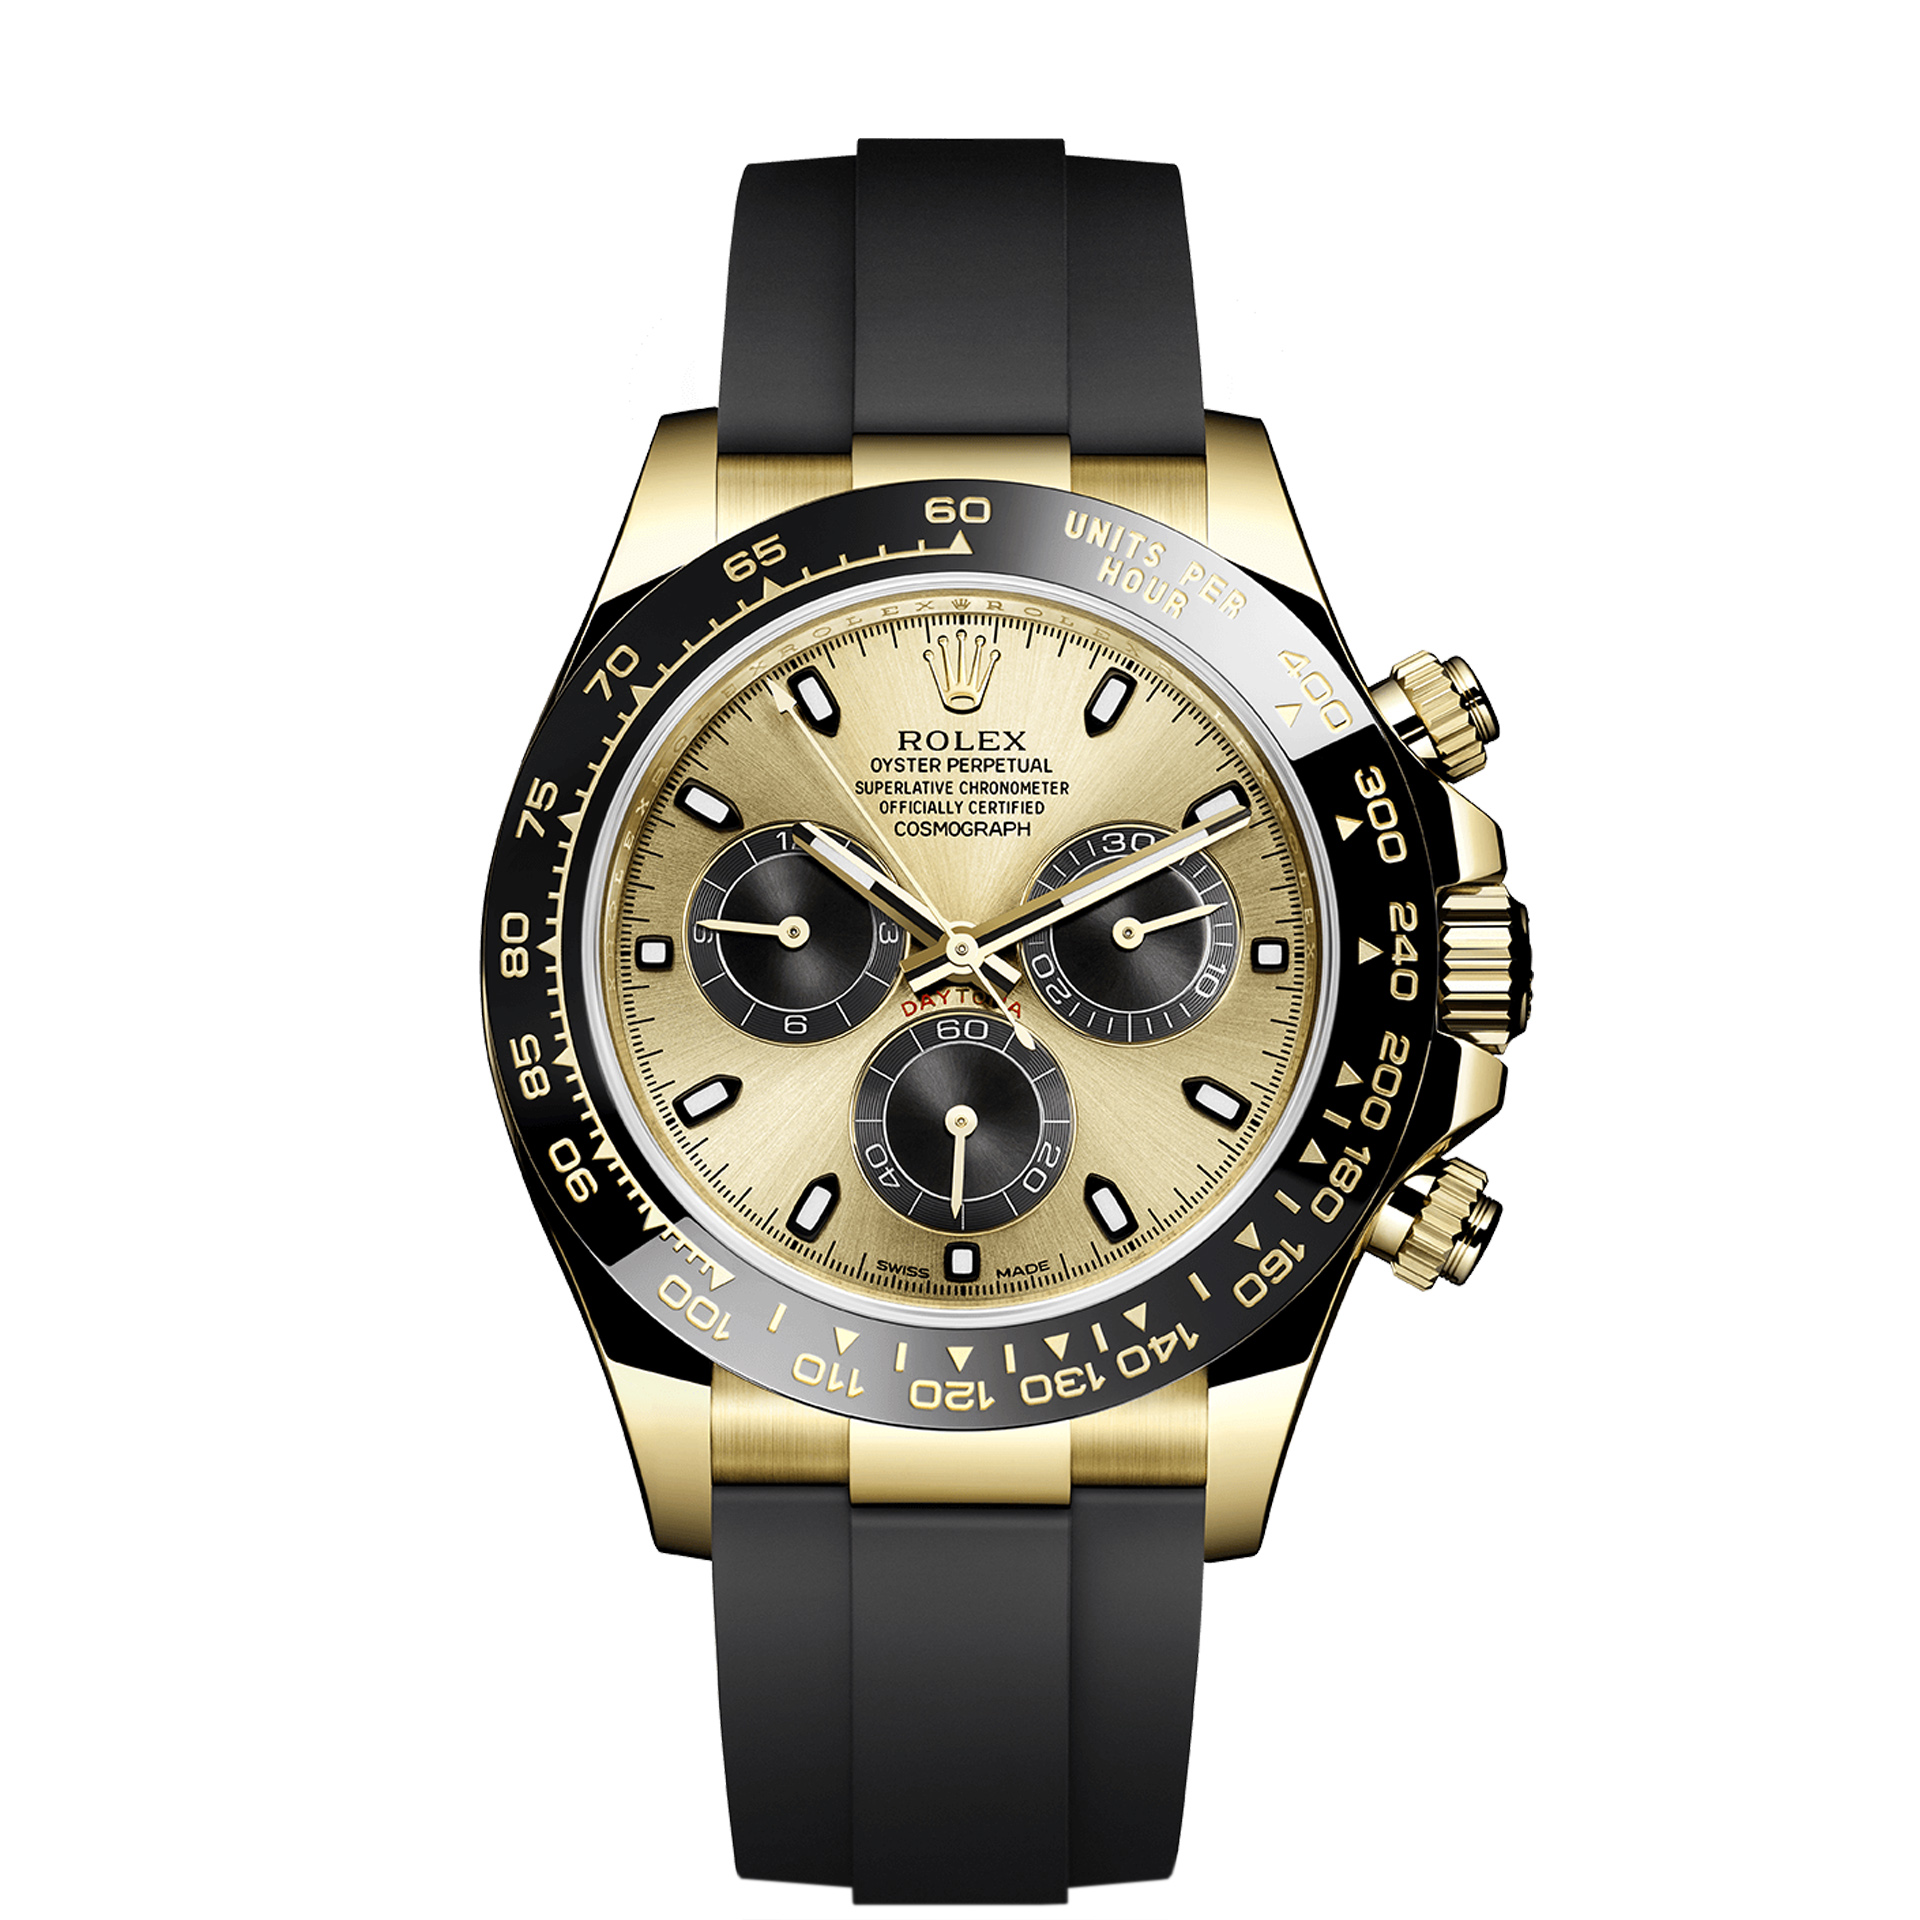 Rolex Cosmograph Daytona Oysterflex 2017 Gold Your Watch Hub